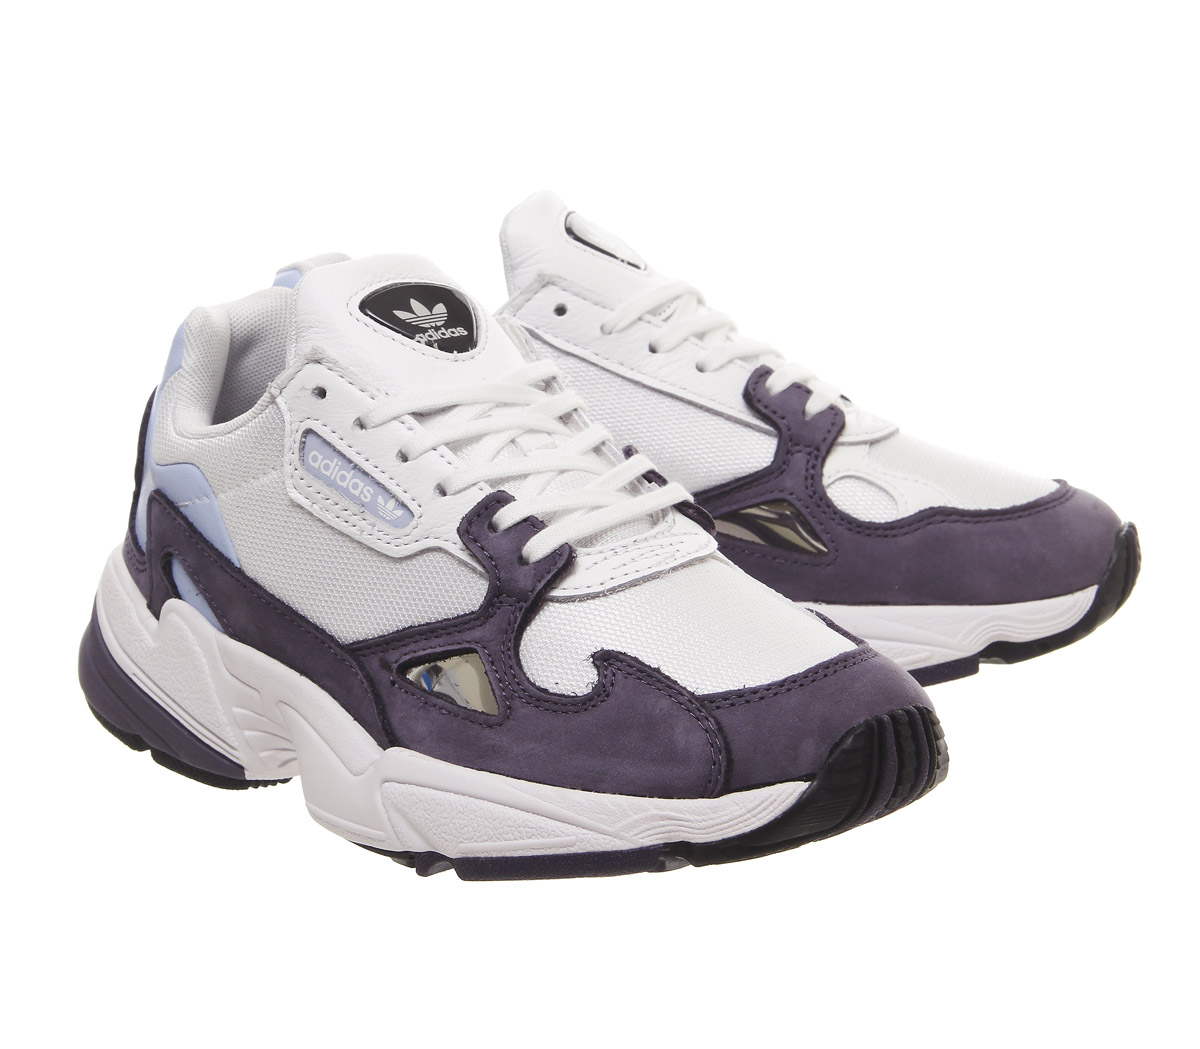 Details zu Womens Adidas Falcon Trainers Trace Purple White Core Black  Trainers Shoes